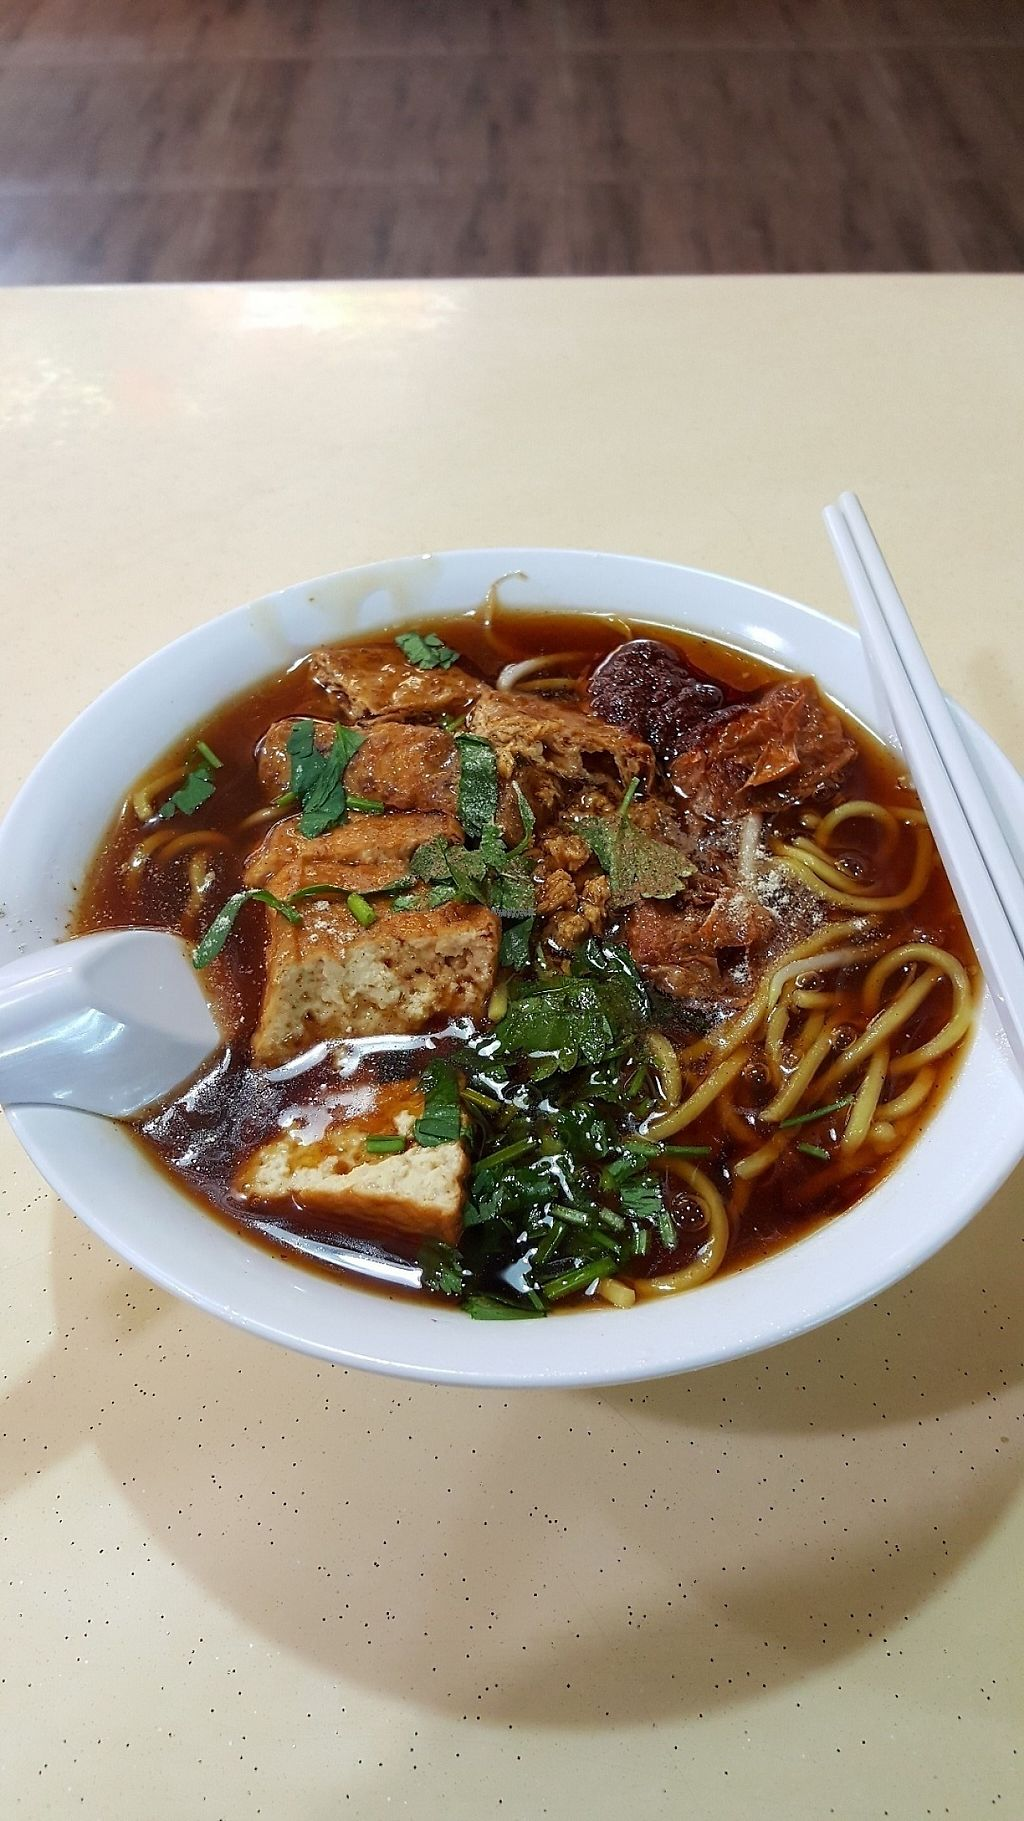 """Photo of Xin En Vegetarian  by <a href=""""/members/profile/binghuan83"""">binghuan83</a> <br/>Lor Mee <br/> November 8, 2016  - <a href='/contact/abuse/image/67567/187392'>Report</a>"""